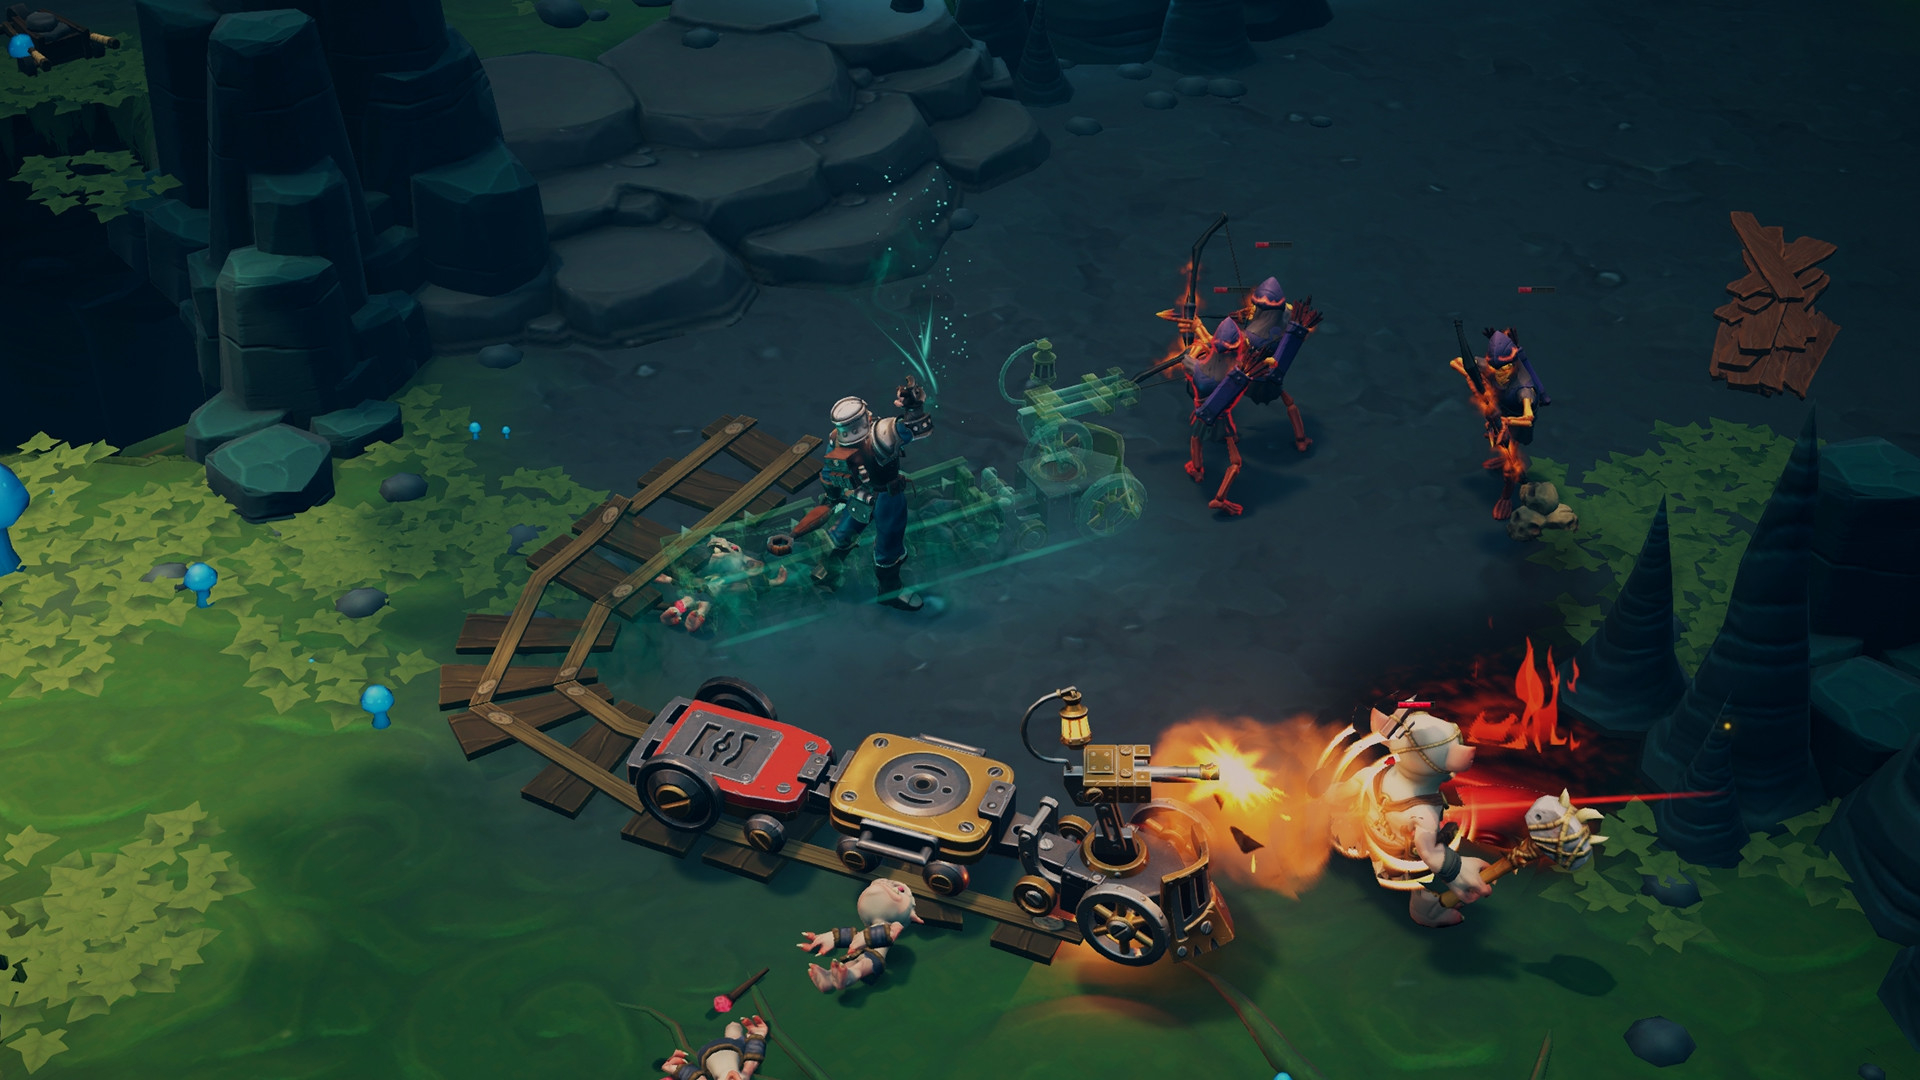 torchlight, Echtra Games, PC, PS4, Xbox One